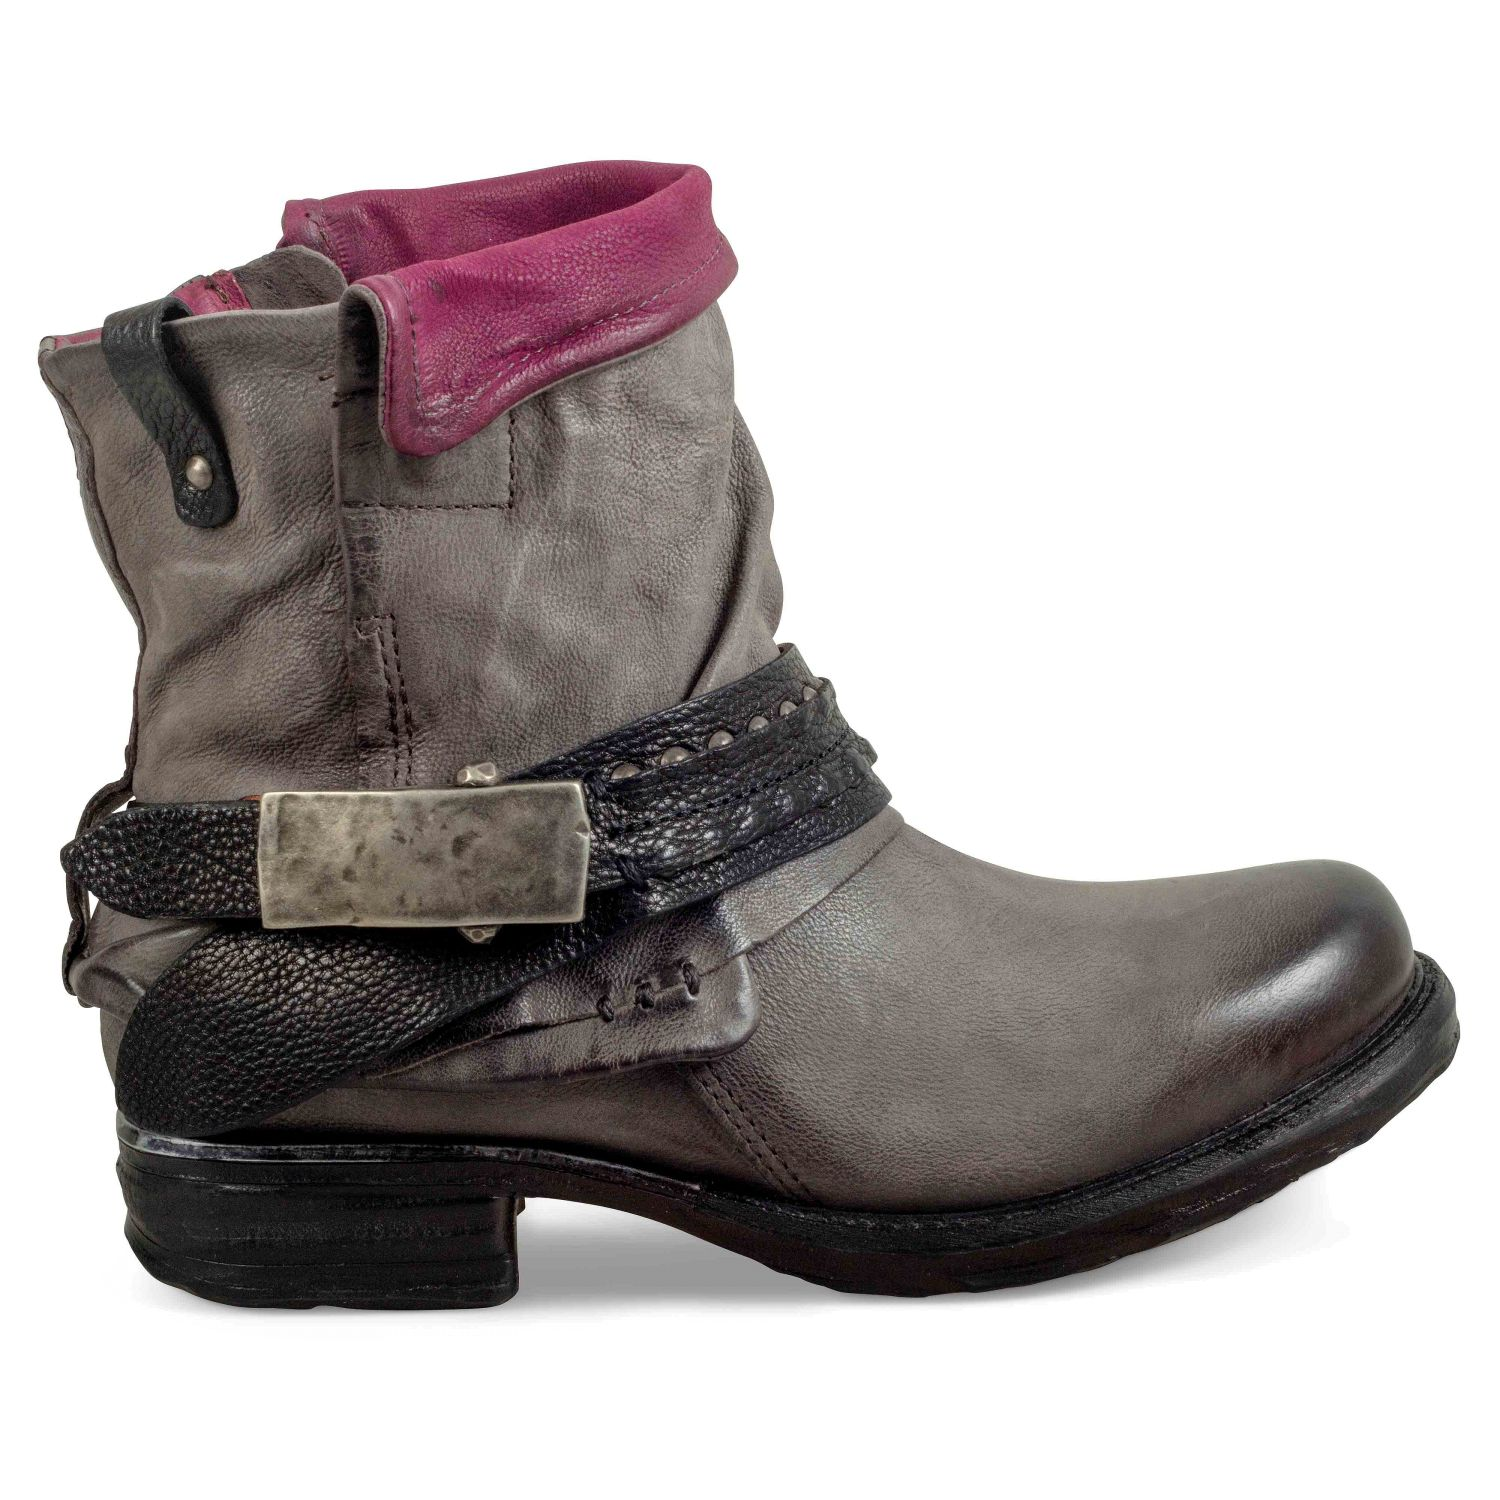 pretty nice order online closer at Sebastian | Fashion - Shoes in 2019 | Leather boots, Boots ...